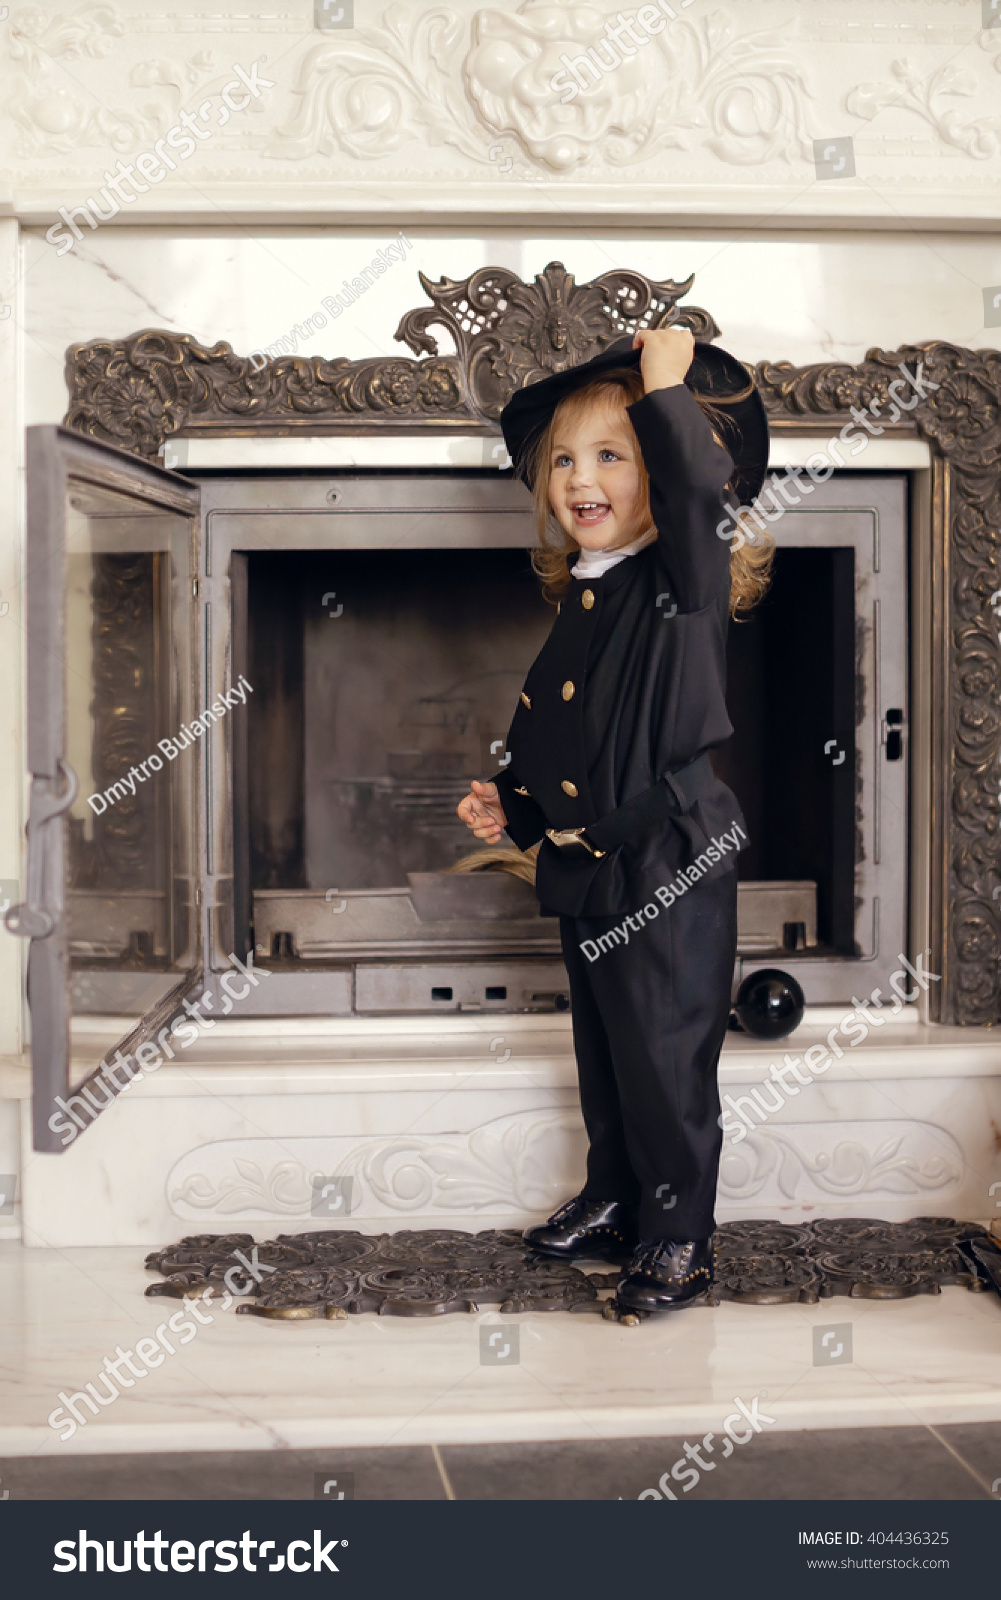 Girl Chimney Sweep Against Fireplace Lucky Stock Photo